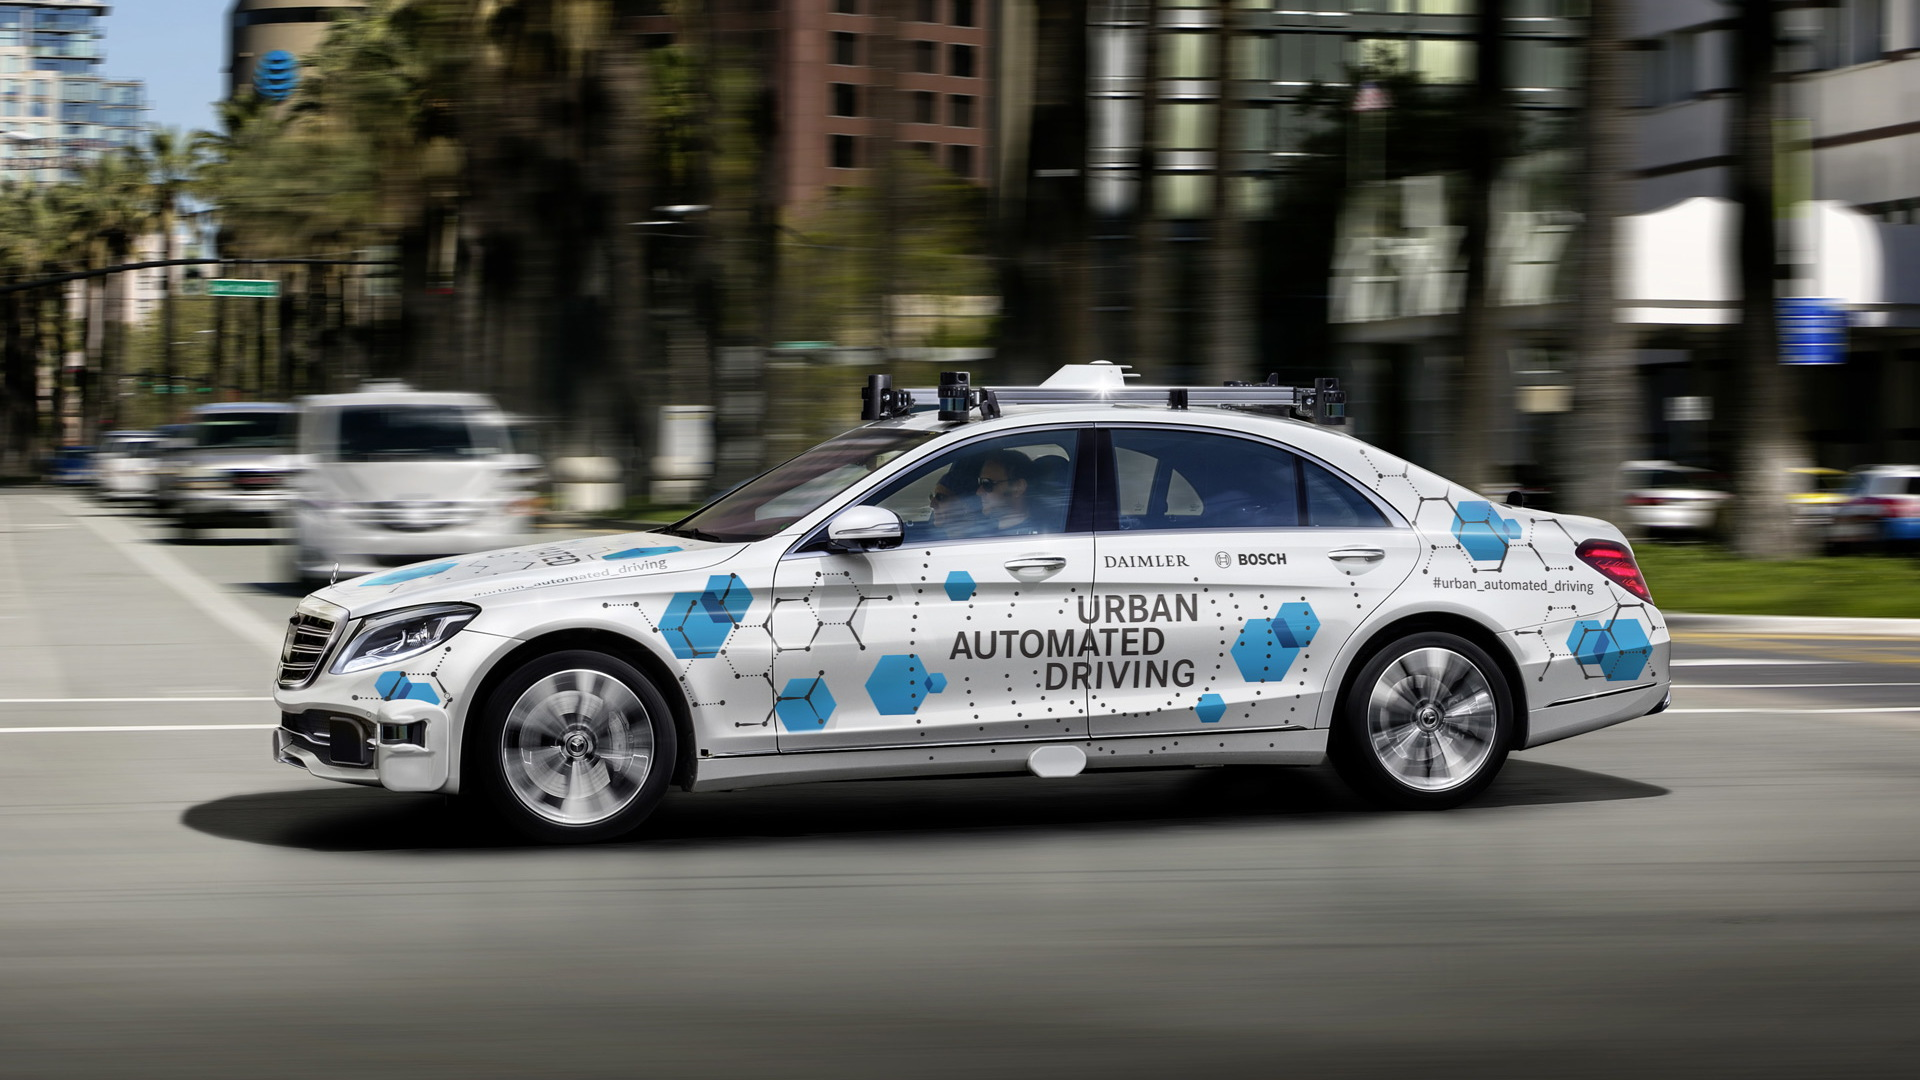 Daimler and Bosch self-driving car prototype